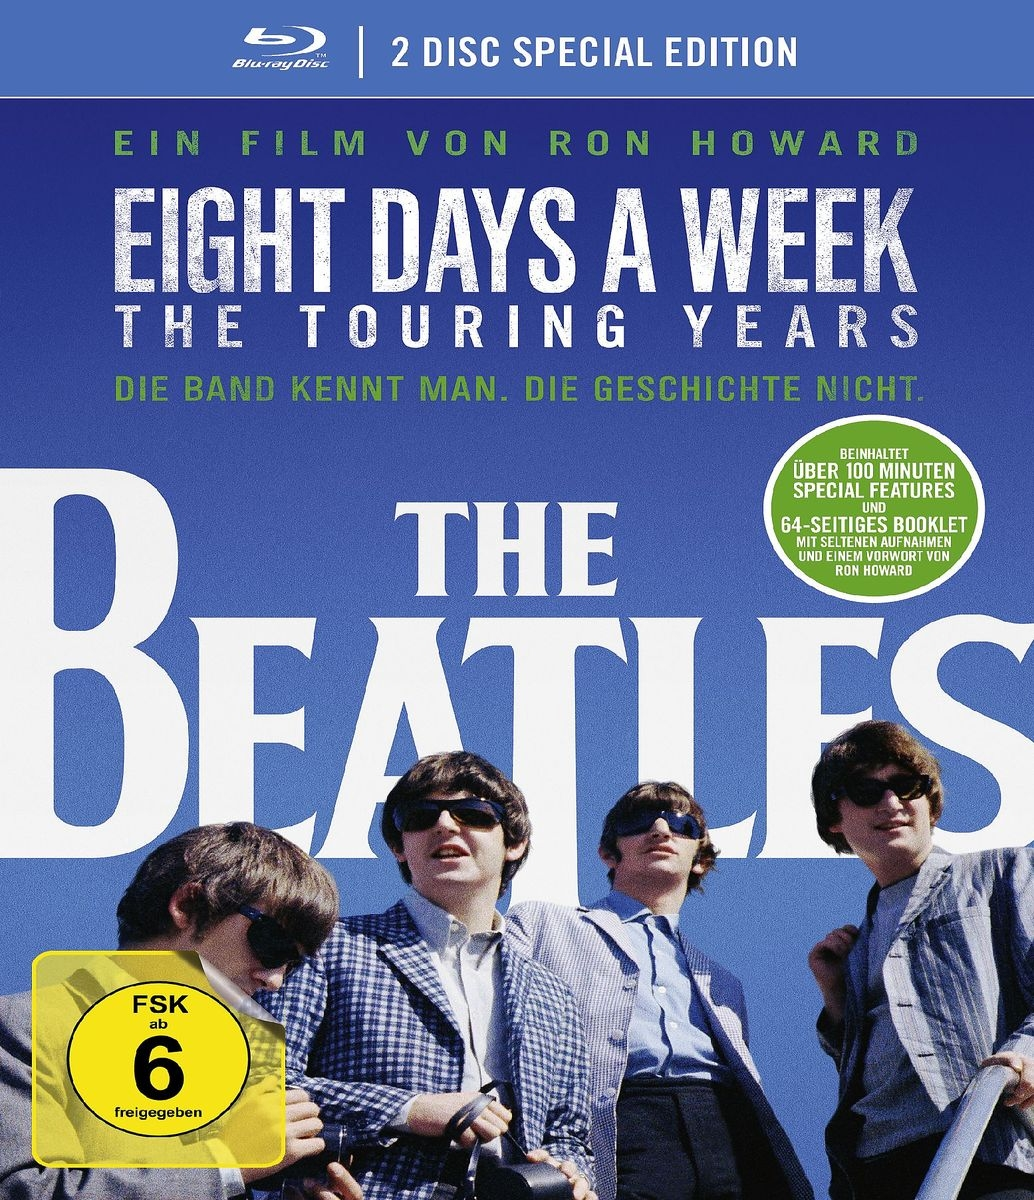 Ron-Howard-The-Beatles-Eight-Days-a-Week-The-Touring-Years-2-Blu-ray-O